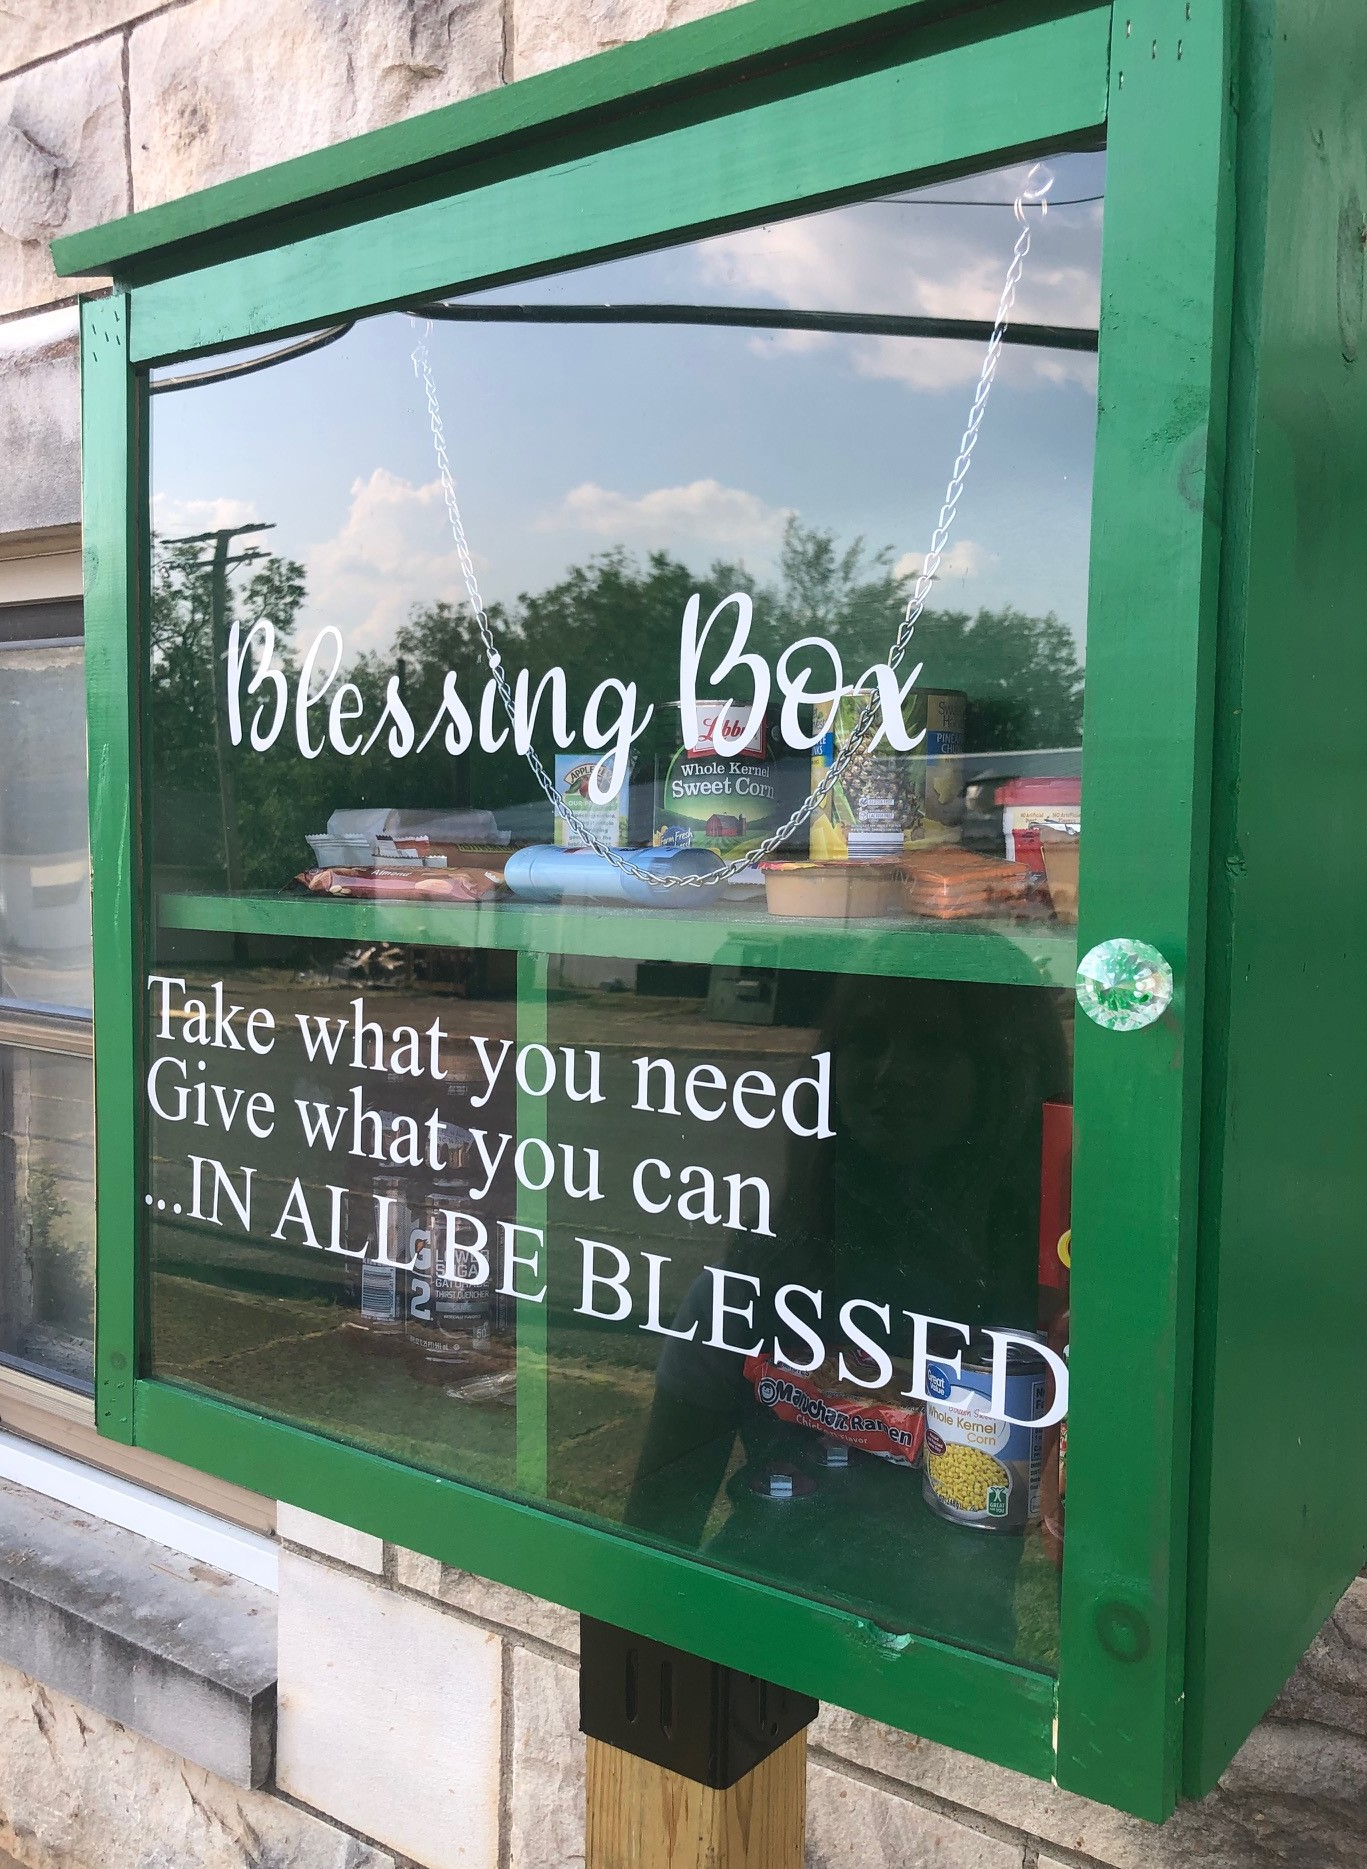 Central Avenue UMC Blessing Box Photo 1